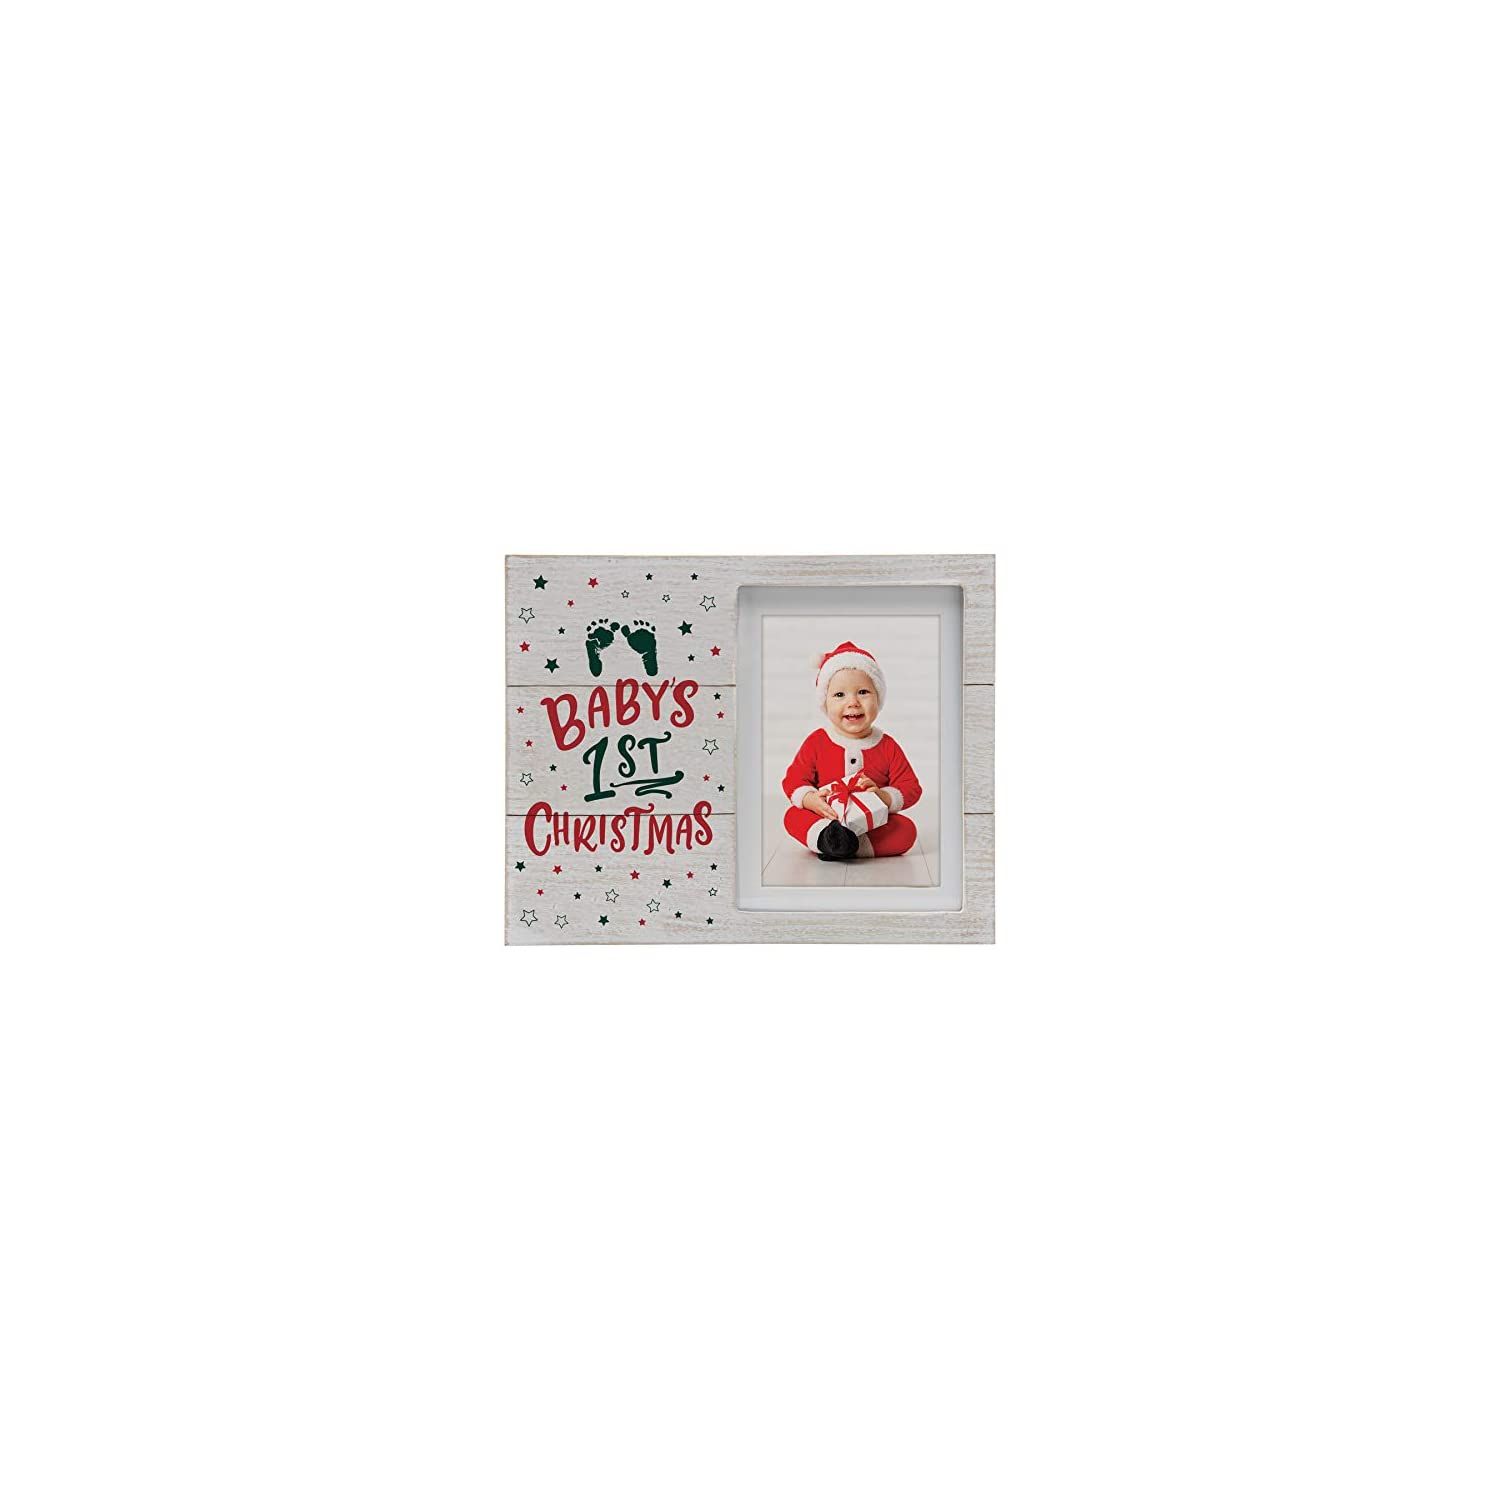 Fine Photo Gifts Baby's 1st Christmas Wood Picture Frame